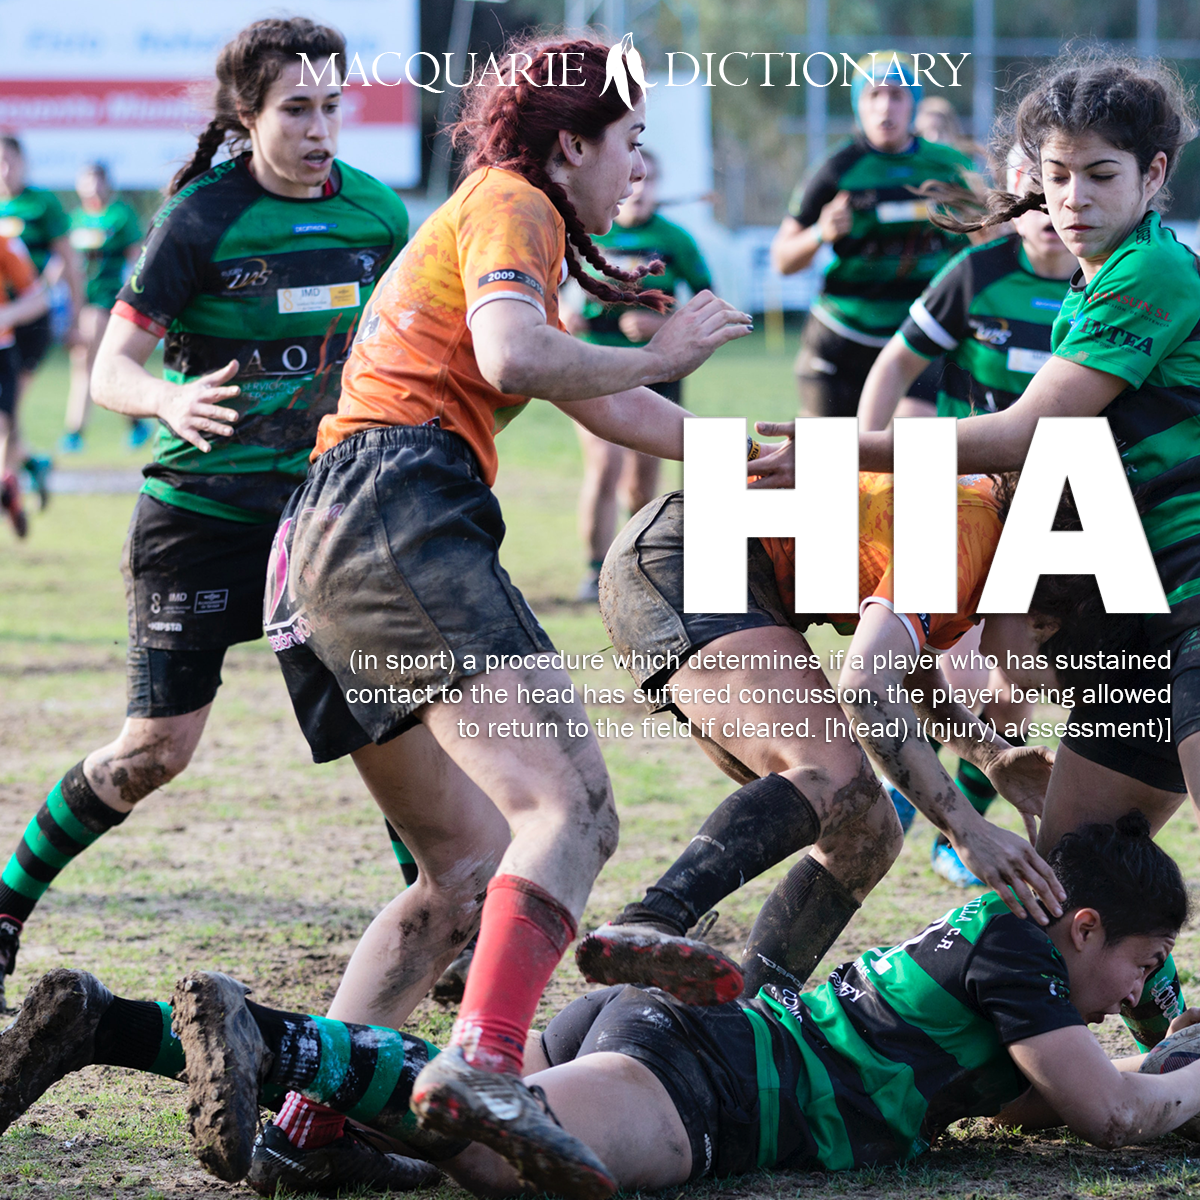 HIA - a procedure which determines if a player who has sustained contact to the head has suffered concussion, the player being allowed to return to the field if cleared.